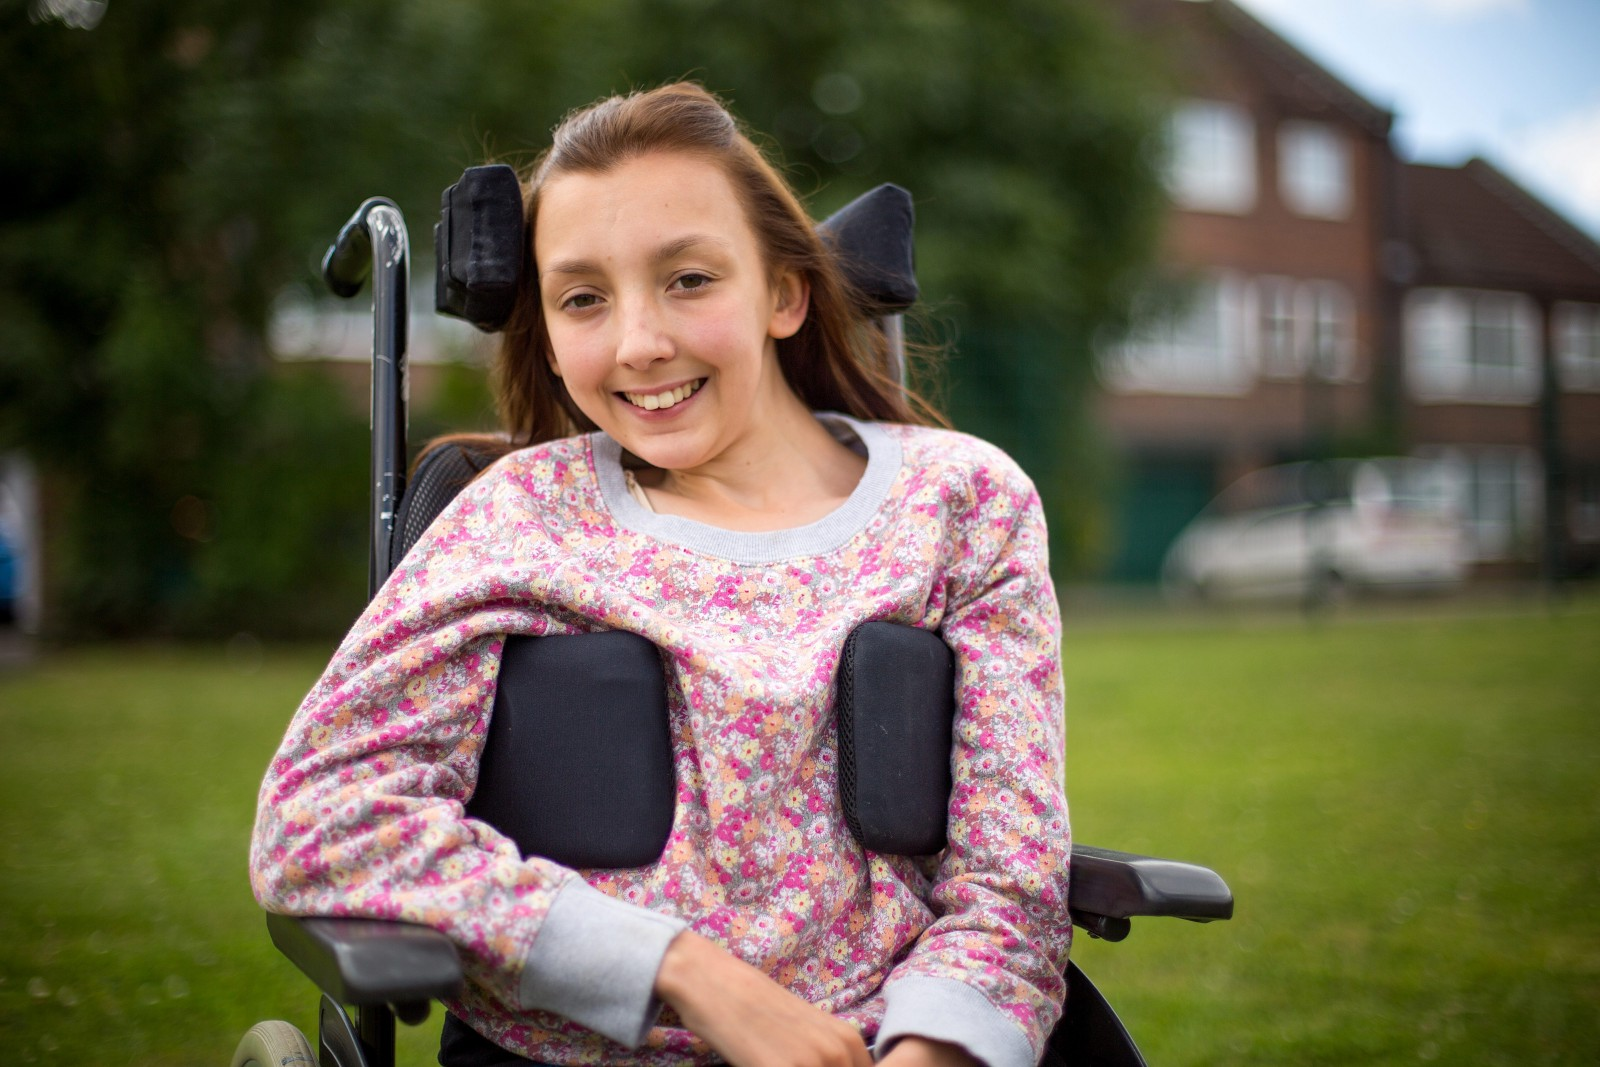 Brave teen heroically proves that people in wheelchairs are NOT easy targets